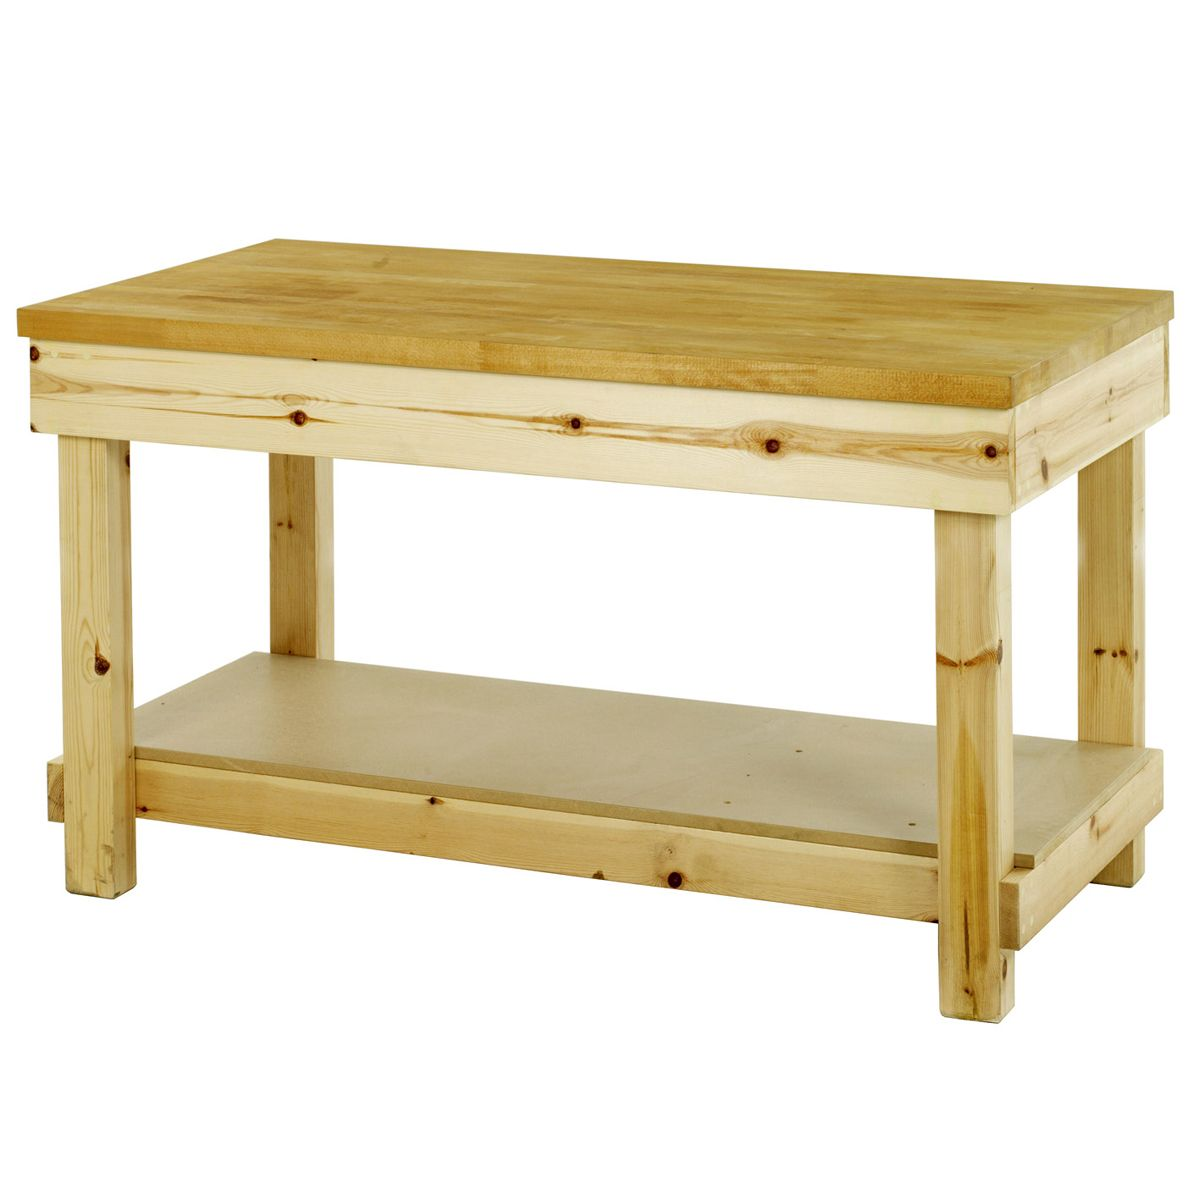 wooden work benches